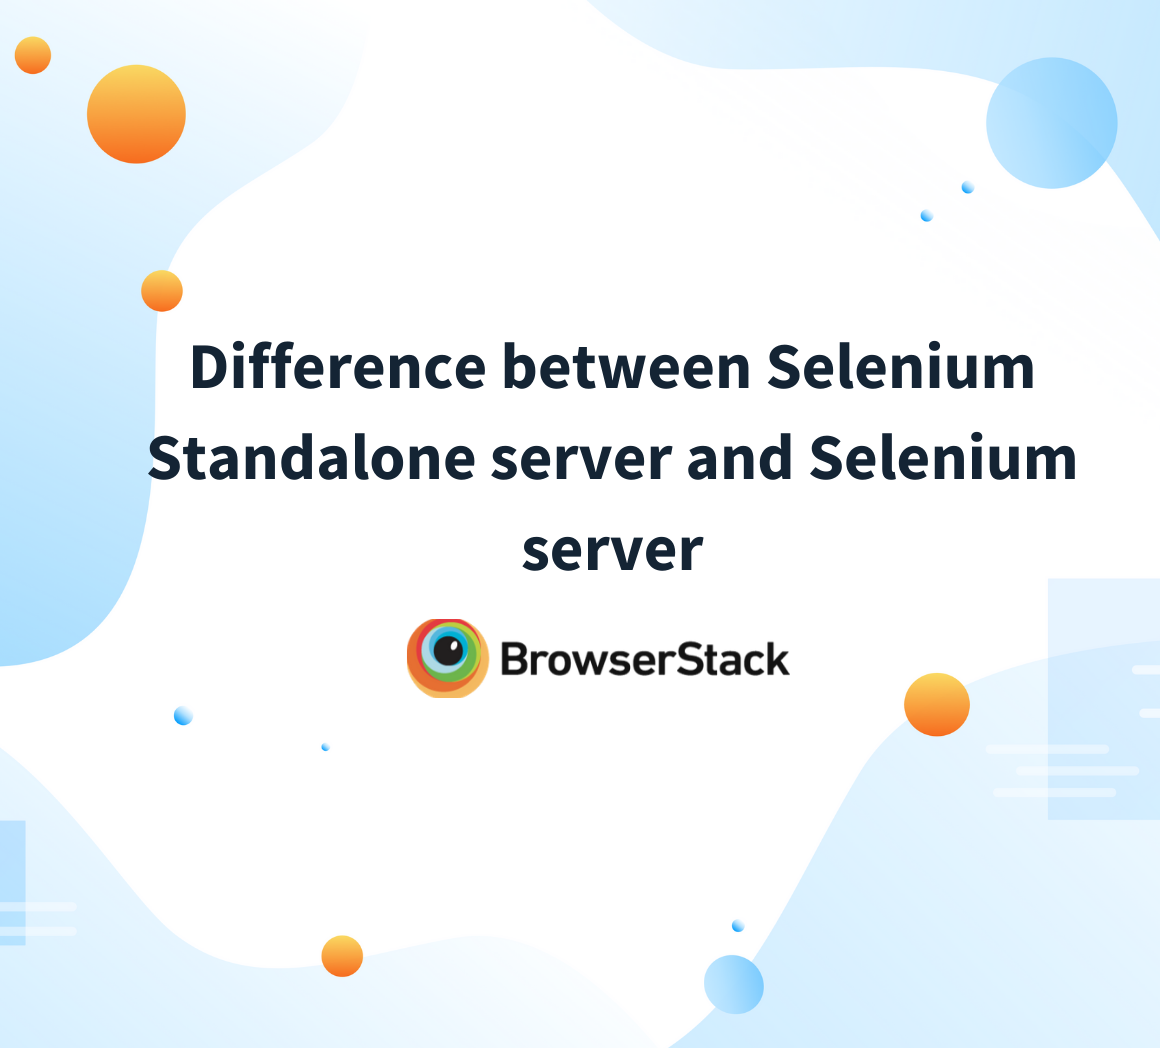 Difference between Selenium Standalone server and Selenium server